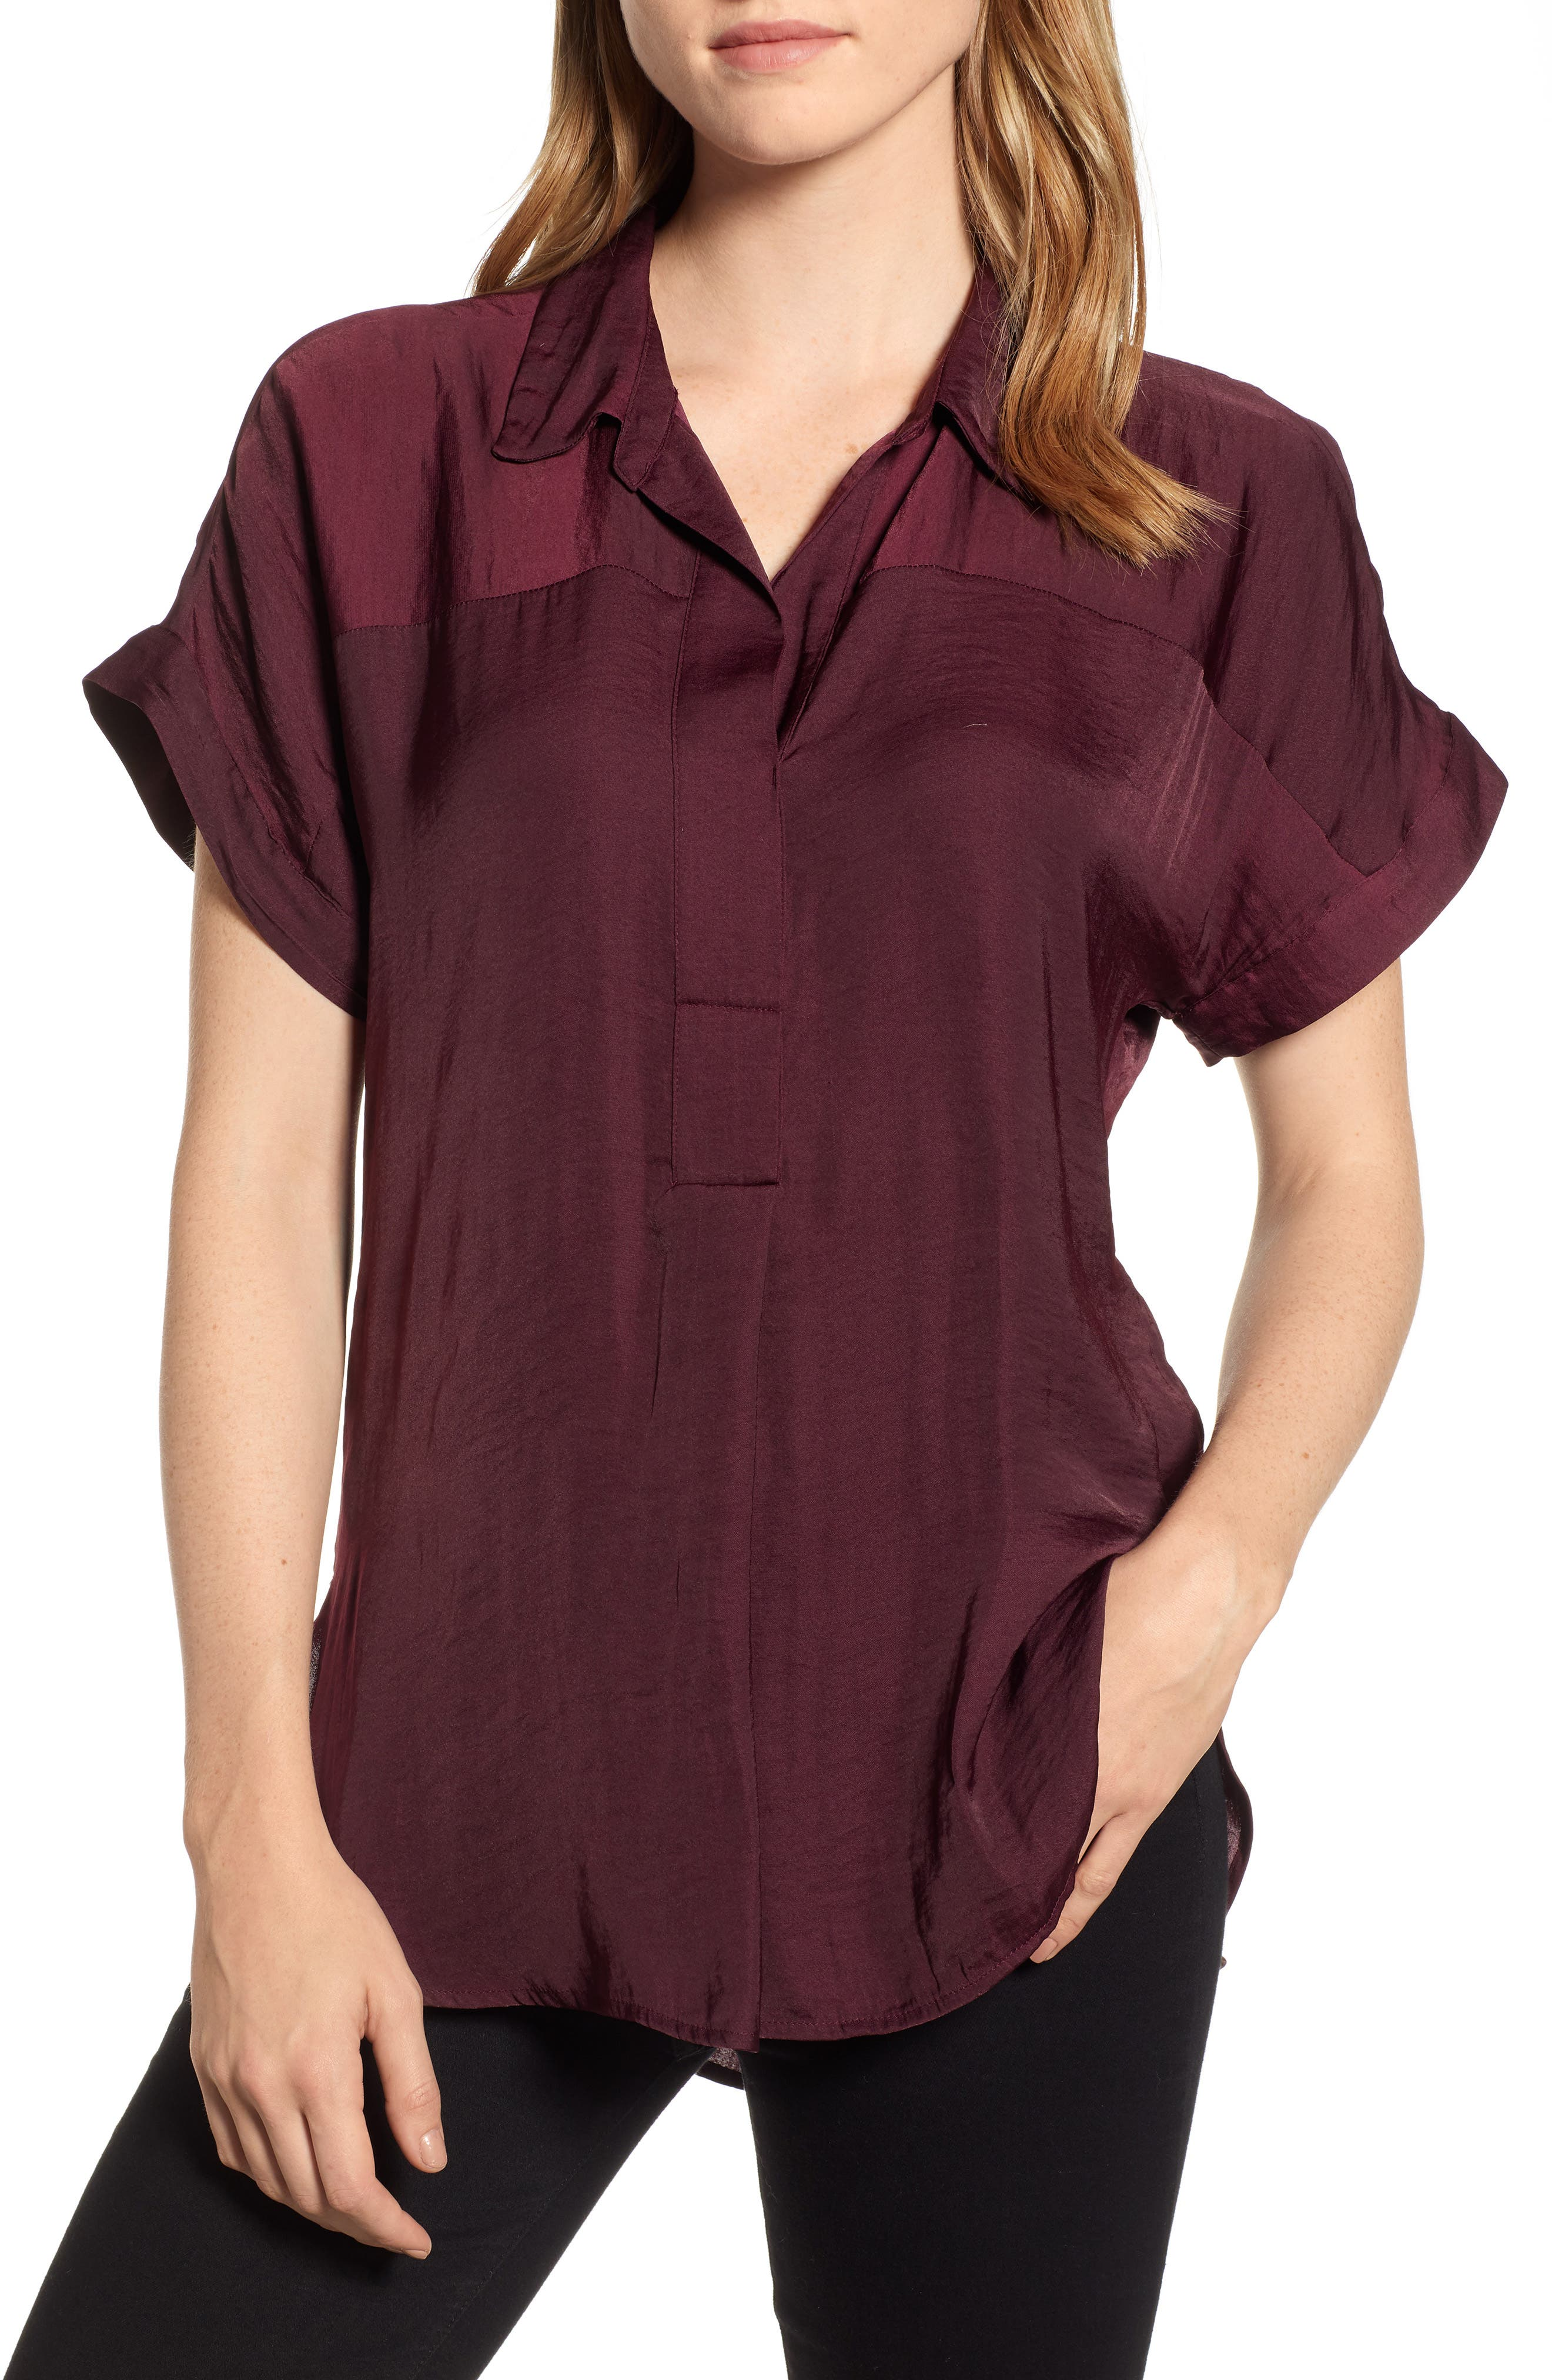 18354caabc027 Women s Satin Tops